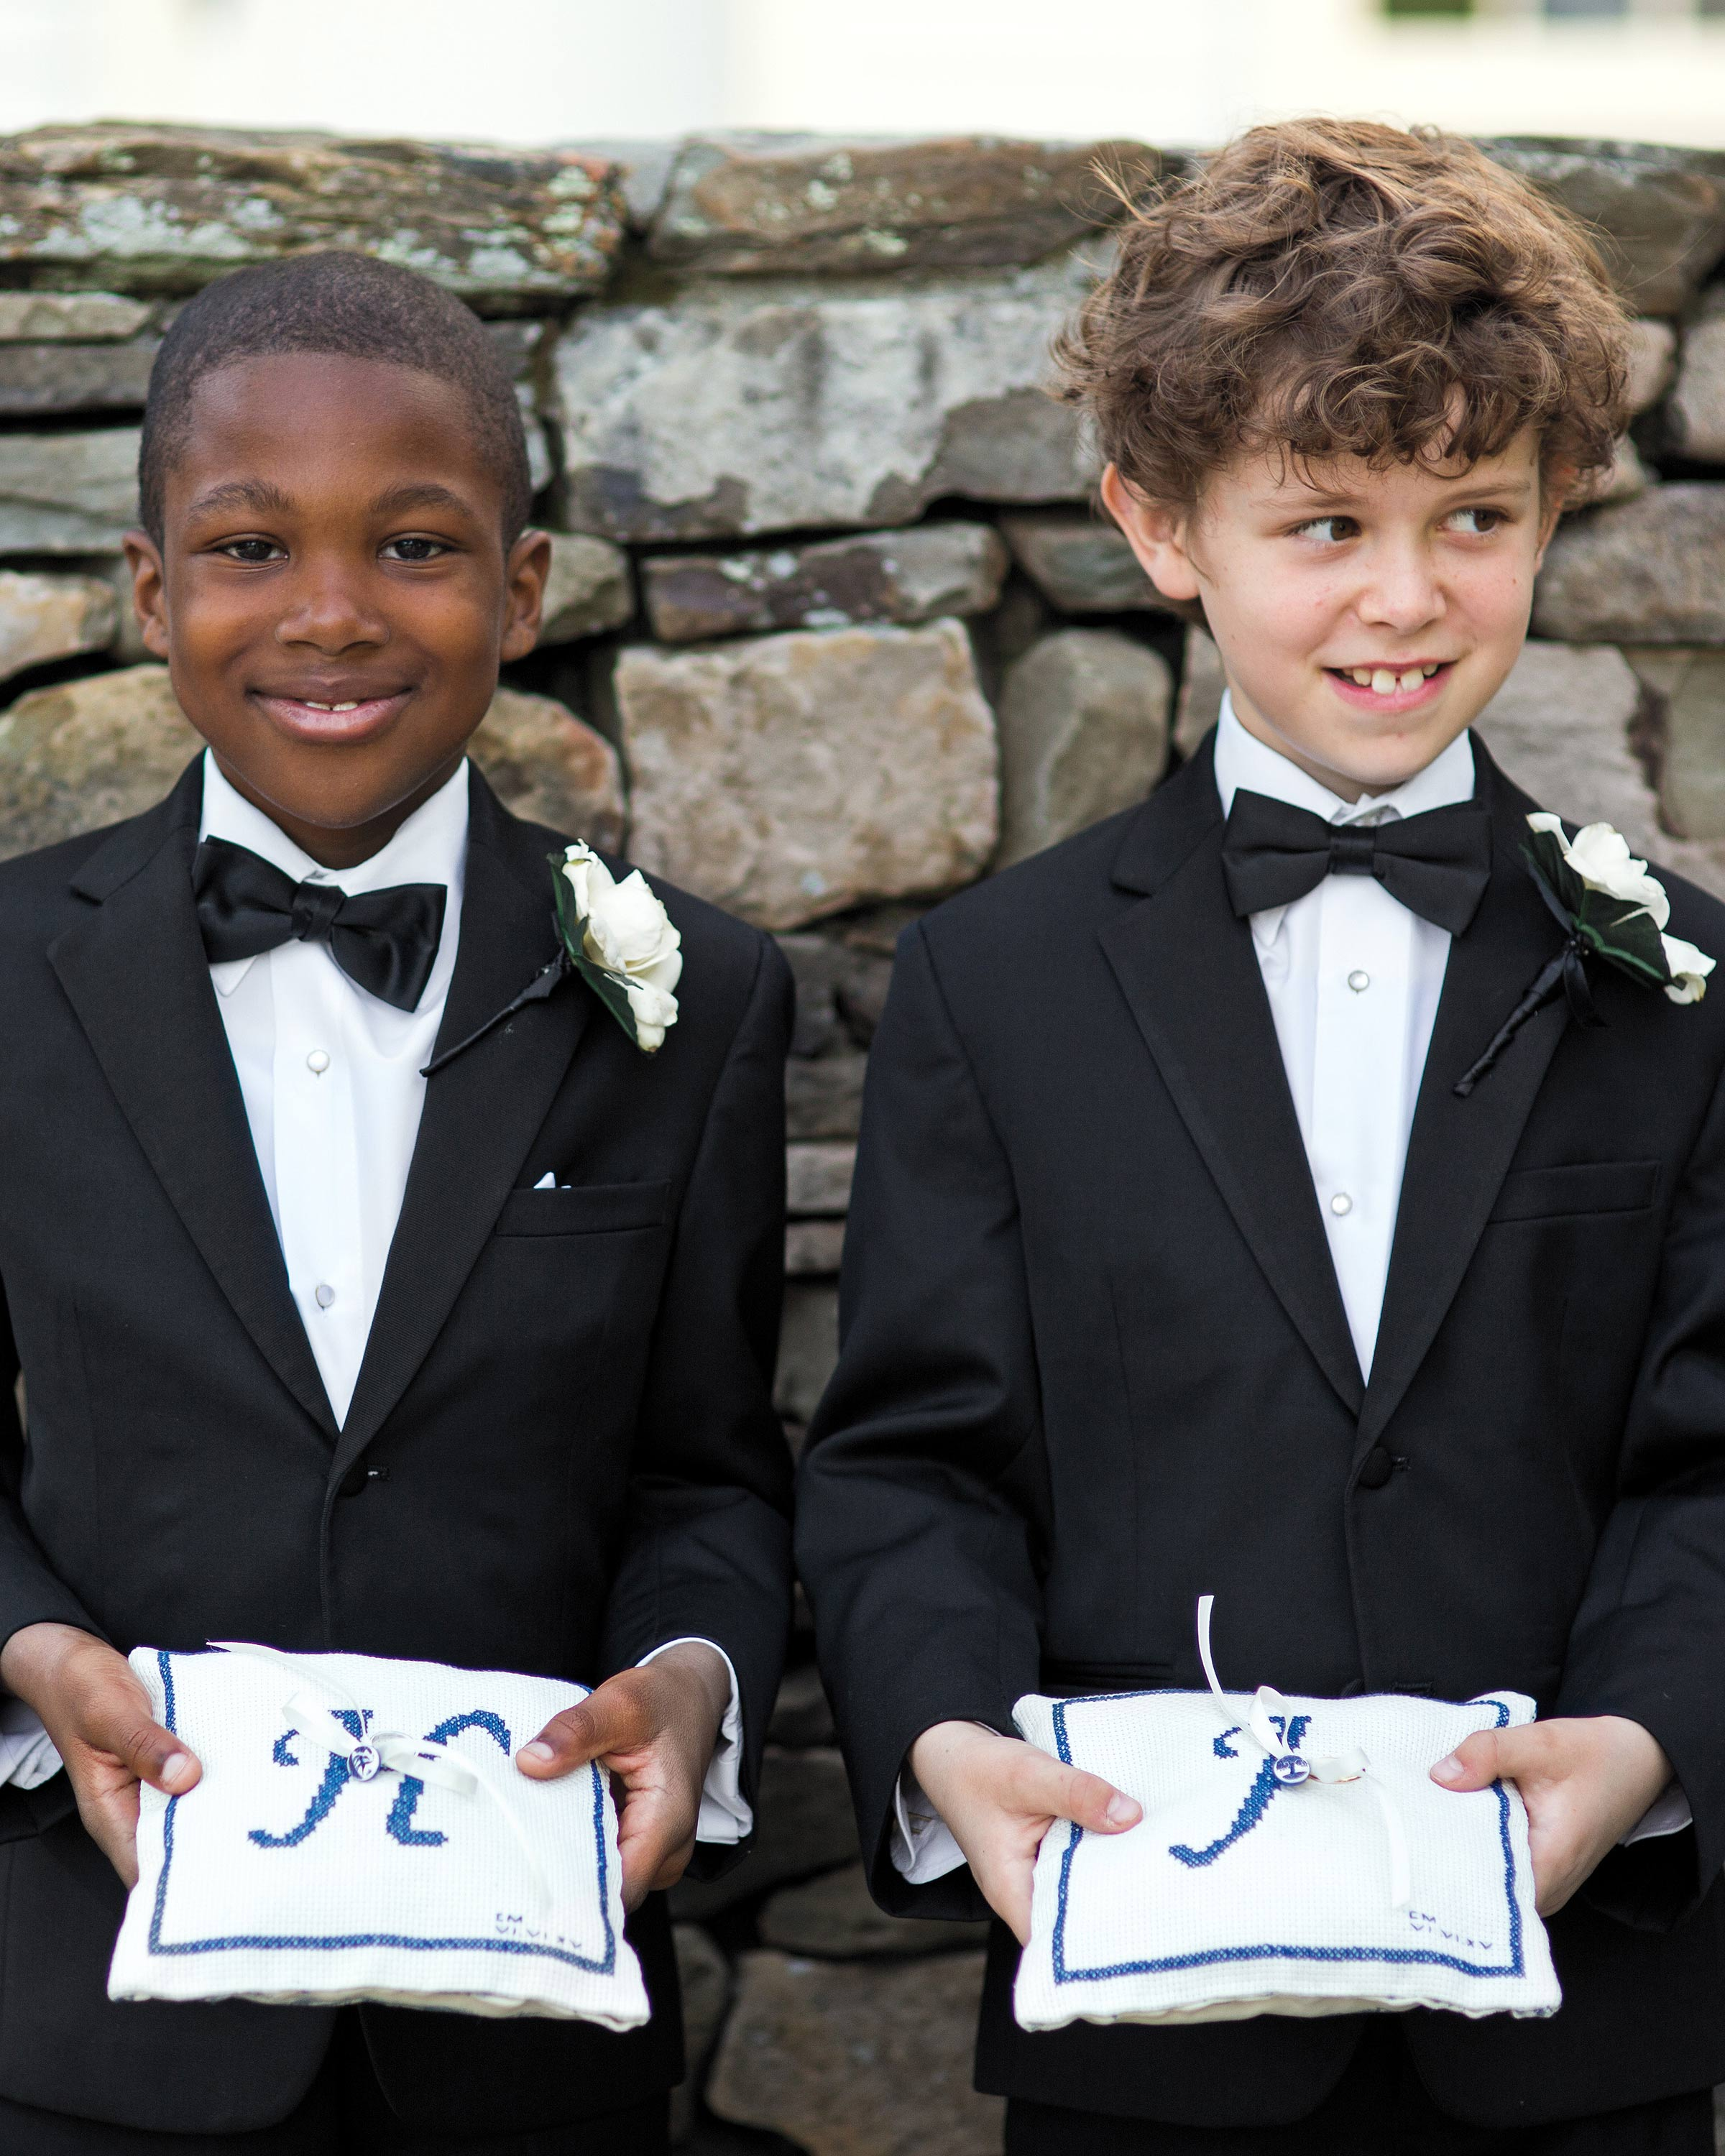 Matching Ring Bearer Boutonnières